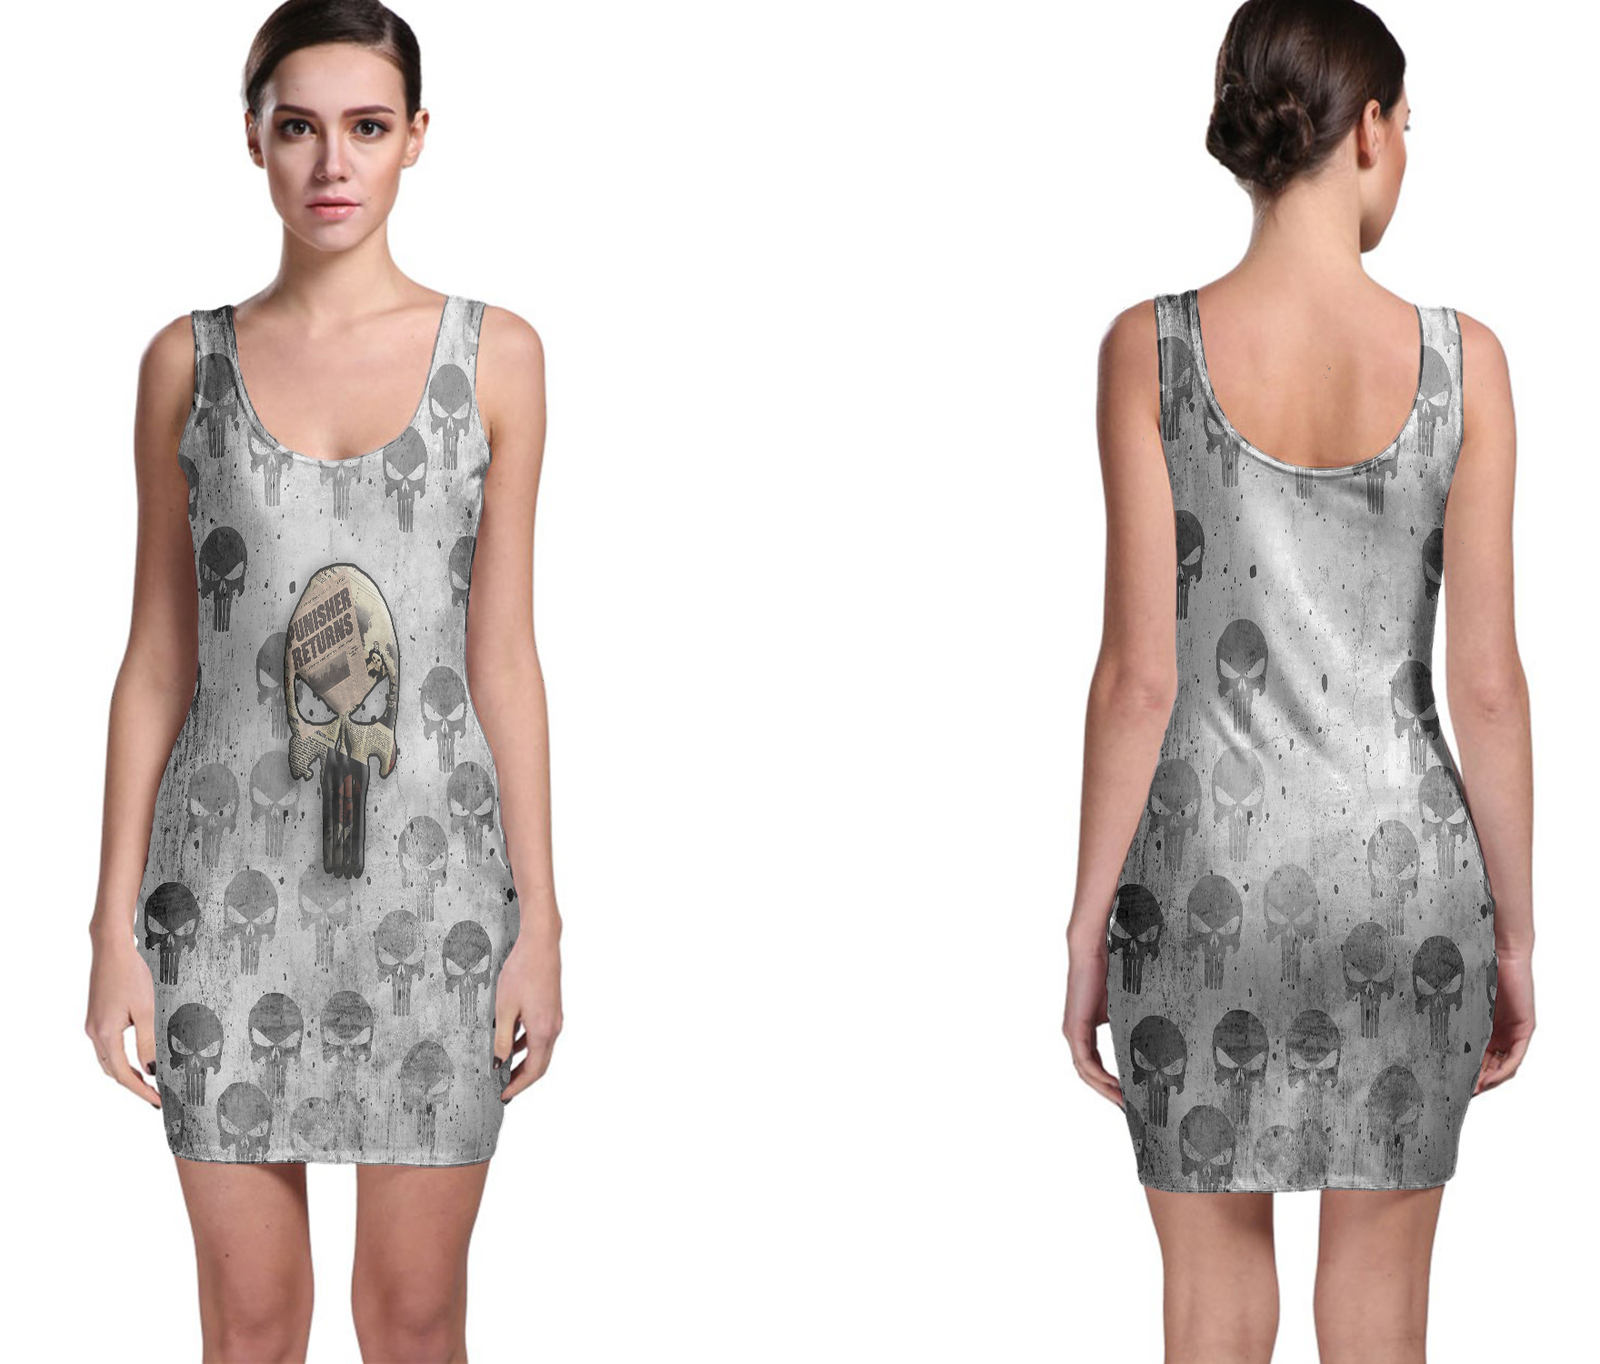 The Punisher Hot News Bodycon Dress